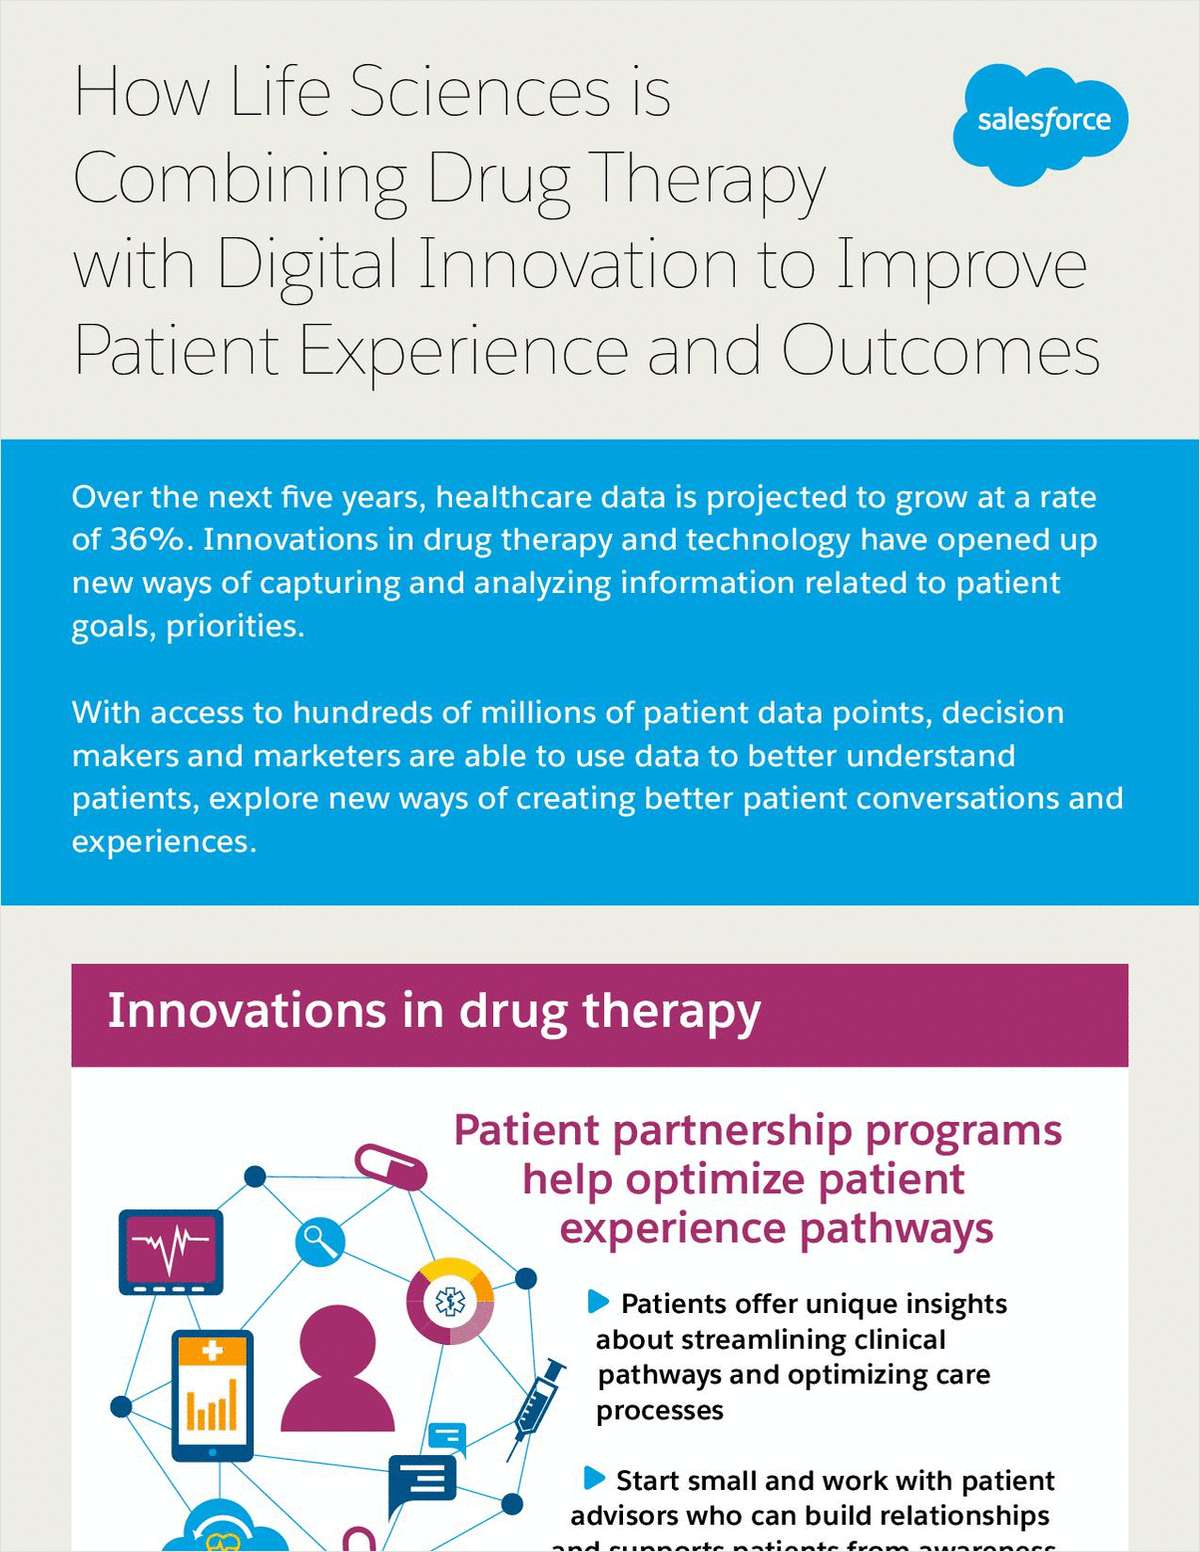 How Life Sciences is Combining Drug Therapy with Digital Innovation to Improve Patient Experience and Outcomes